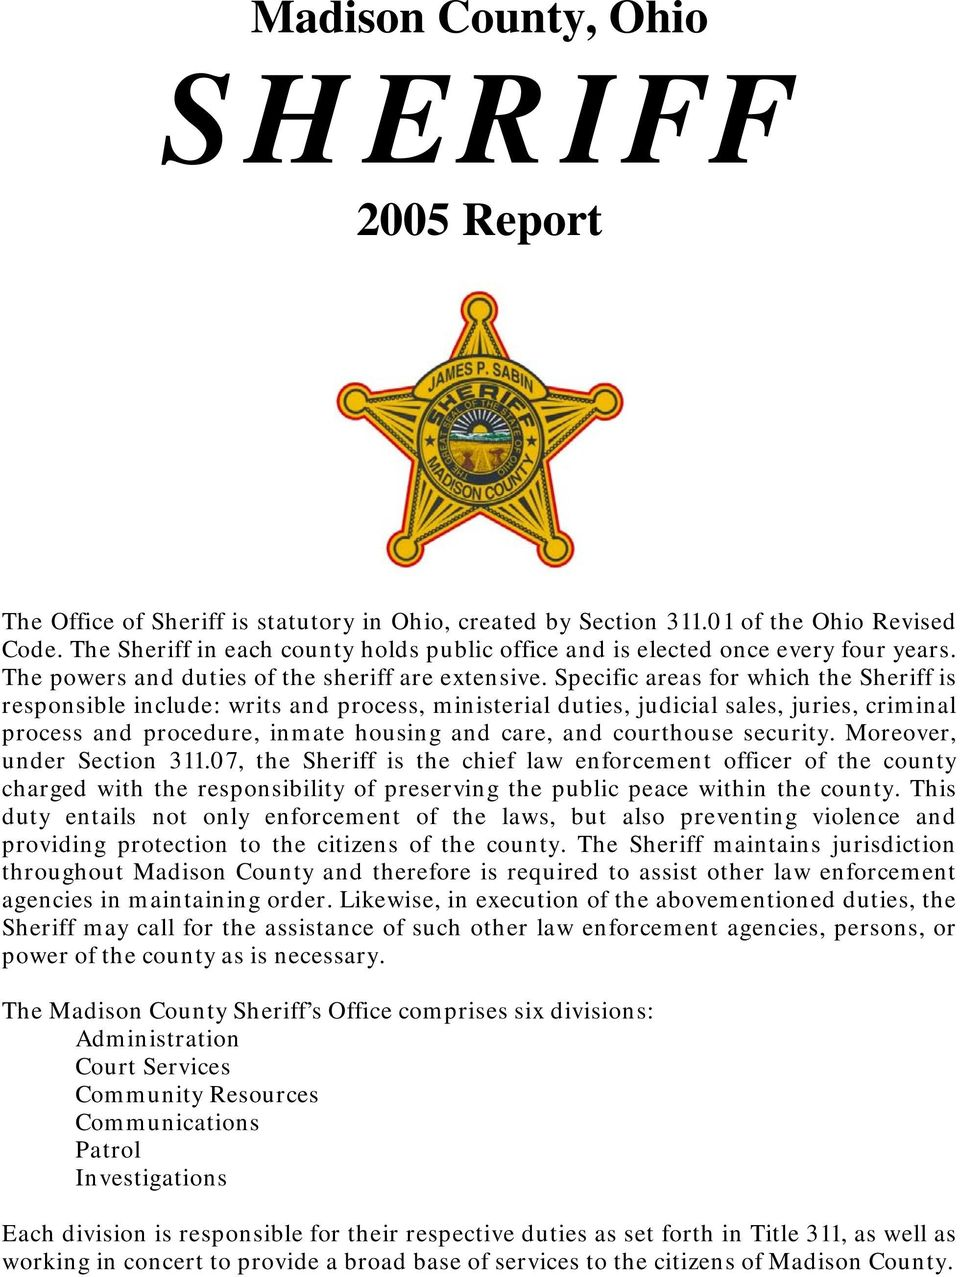 Specific areas for which the Sheriff is responsible include: writs and process, ministerial duties, judicial sales, juries, criminal process and procedure, inmate housing and care, and courthouse